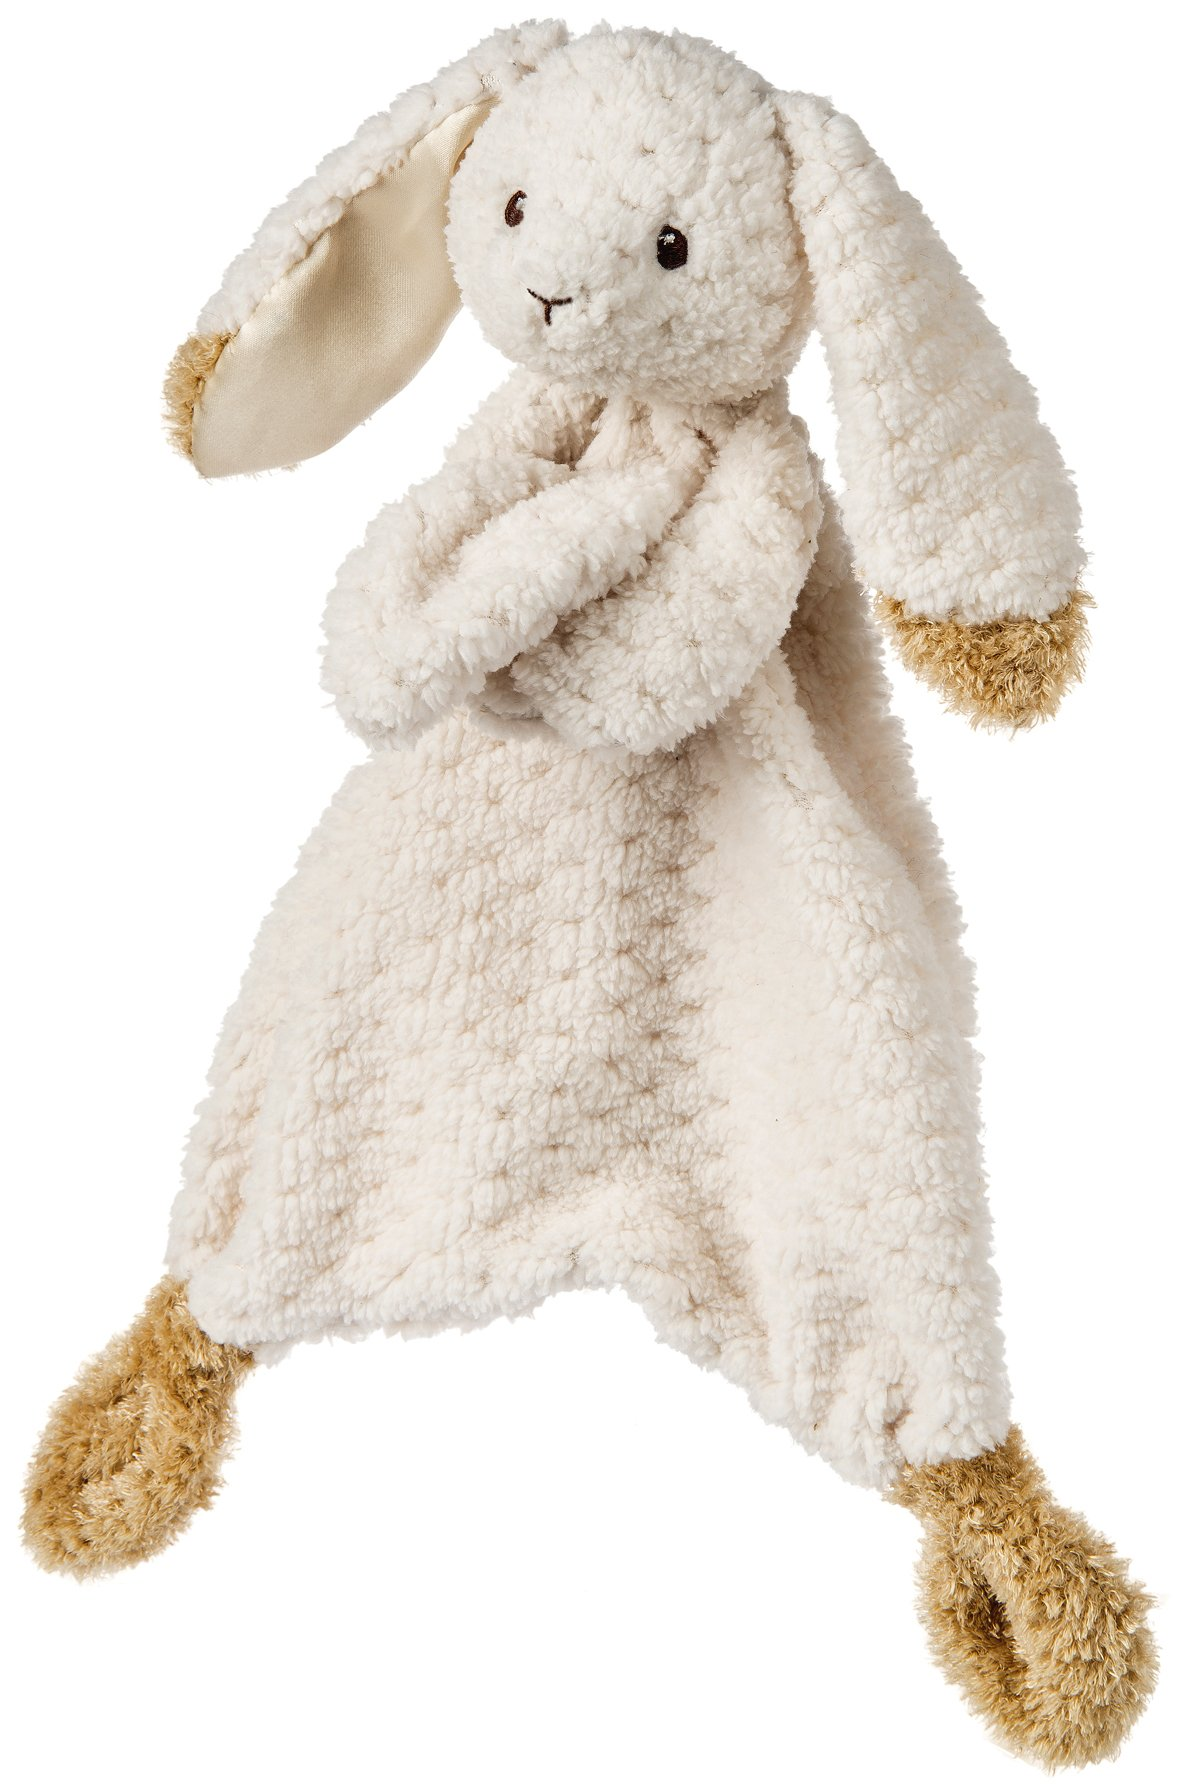 Mary Meyer Lovey Soft Toy, Oatmeal Bunny by Mary Meyer